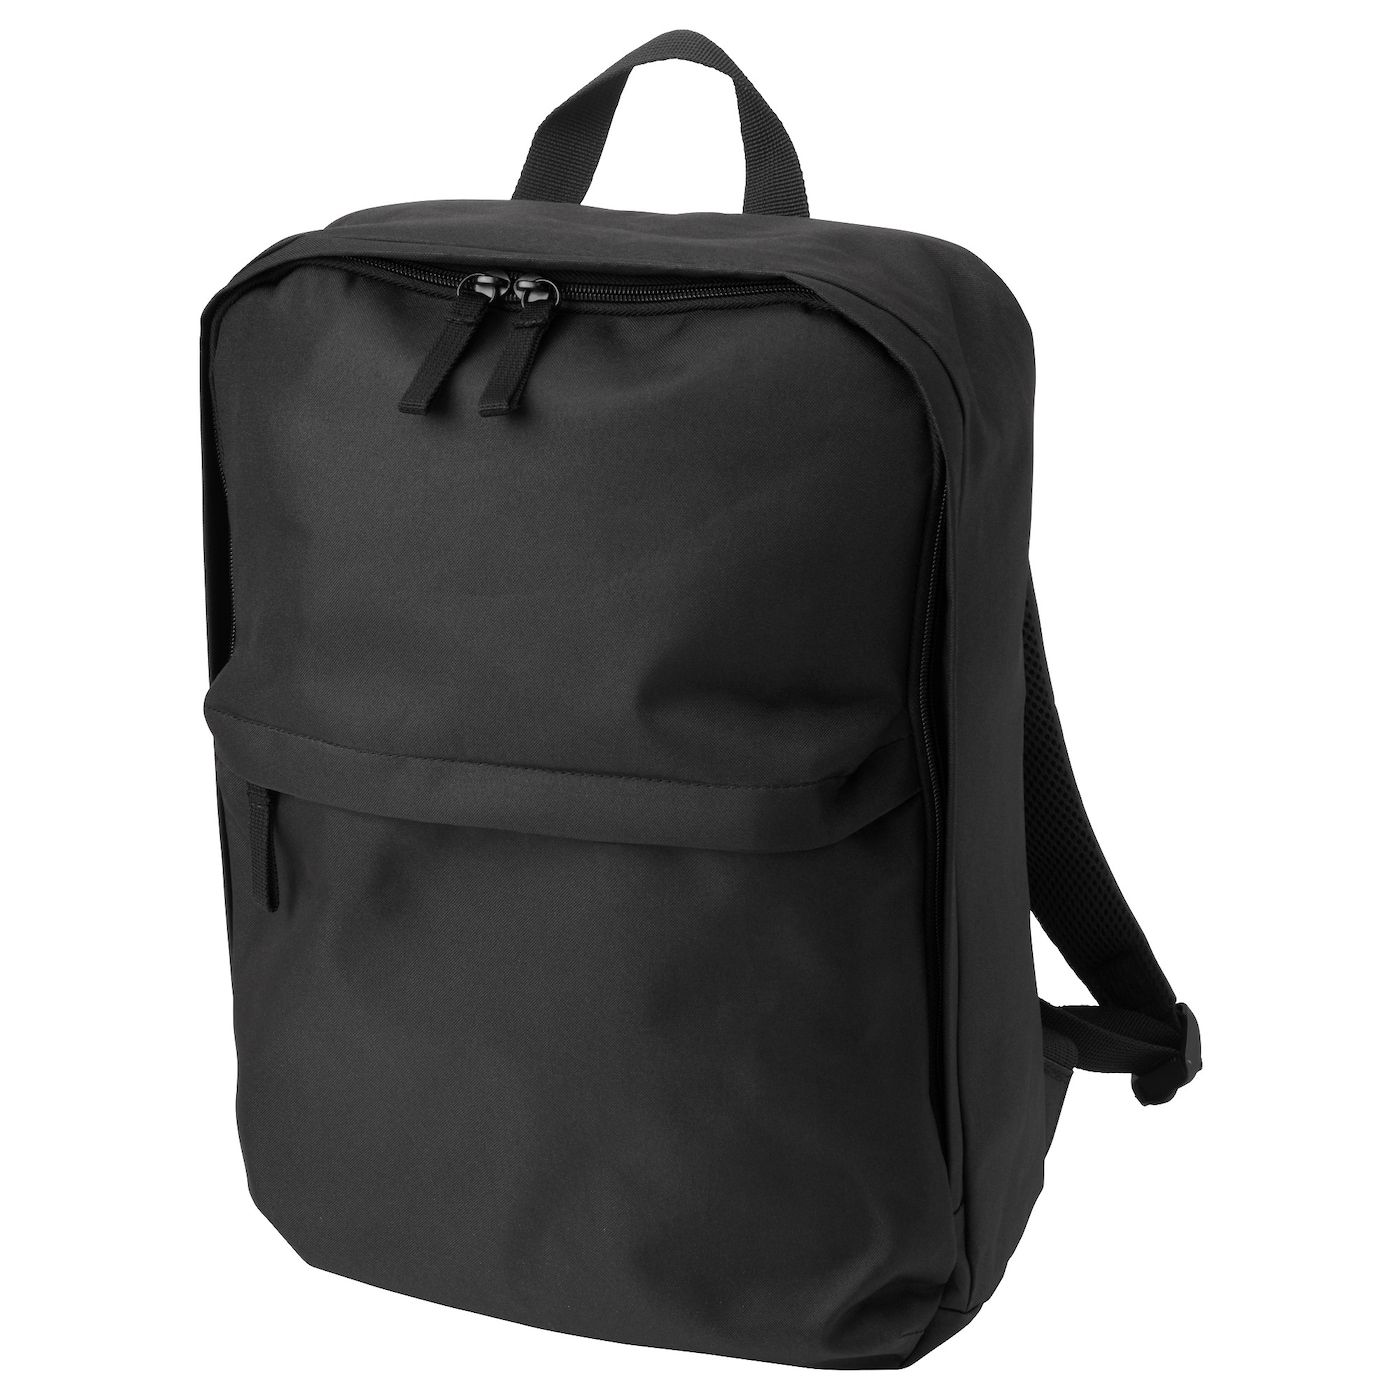 IKEA STARTTID backpack